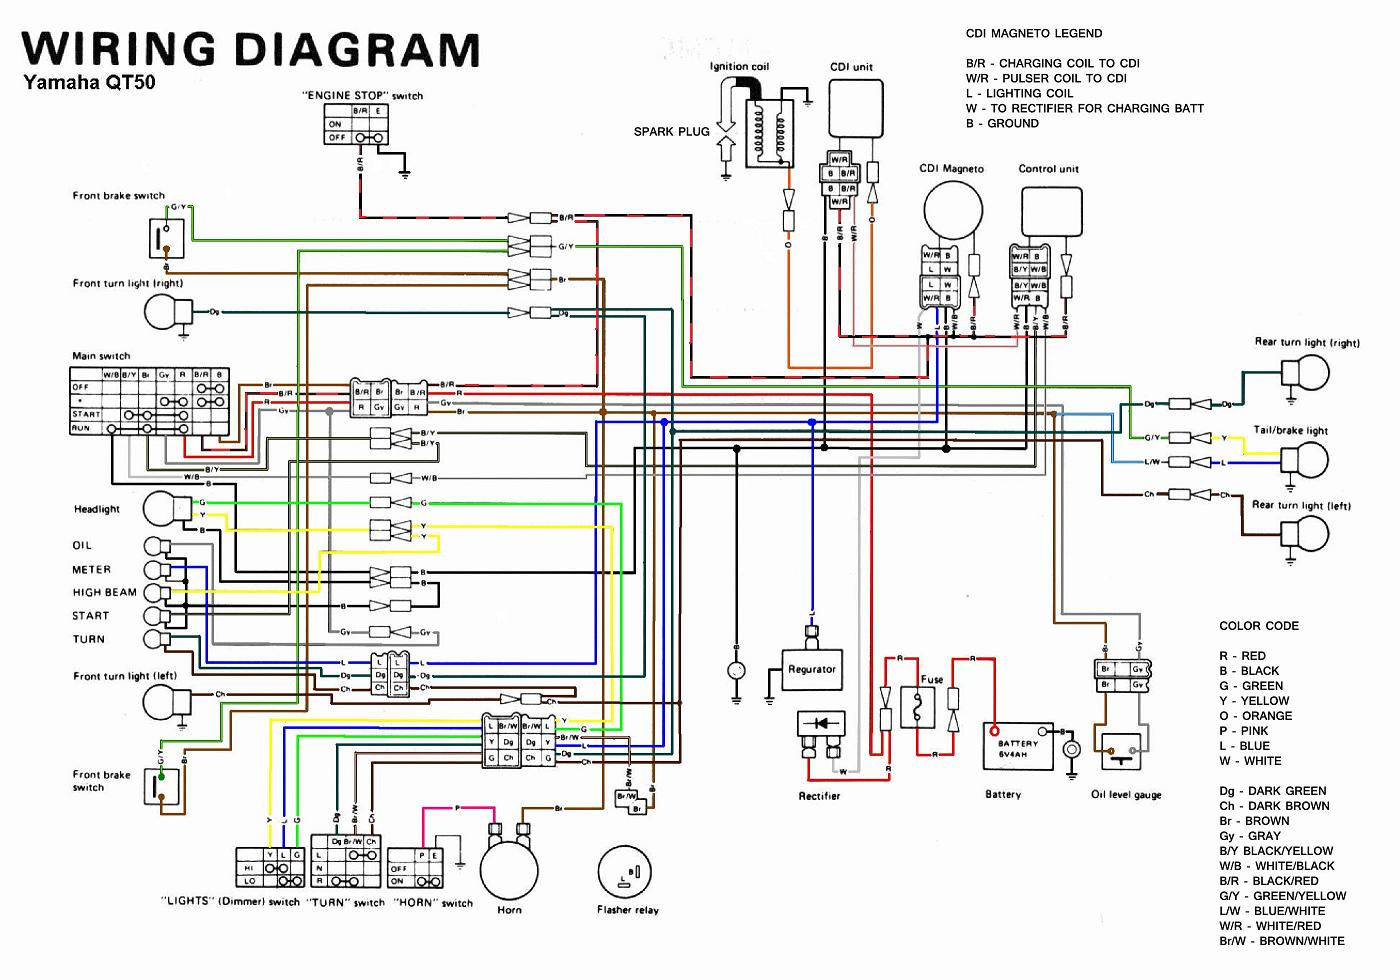 Coil Wiring Diagram 250 Suzuki Motorcycle Simple Guide About Gn400 Yamaha Qt50 Luvin And Other Nopeds Rh Net